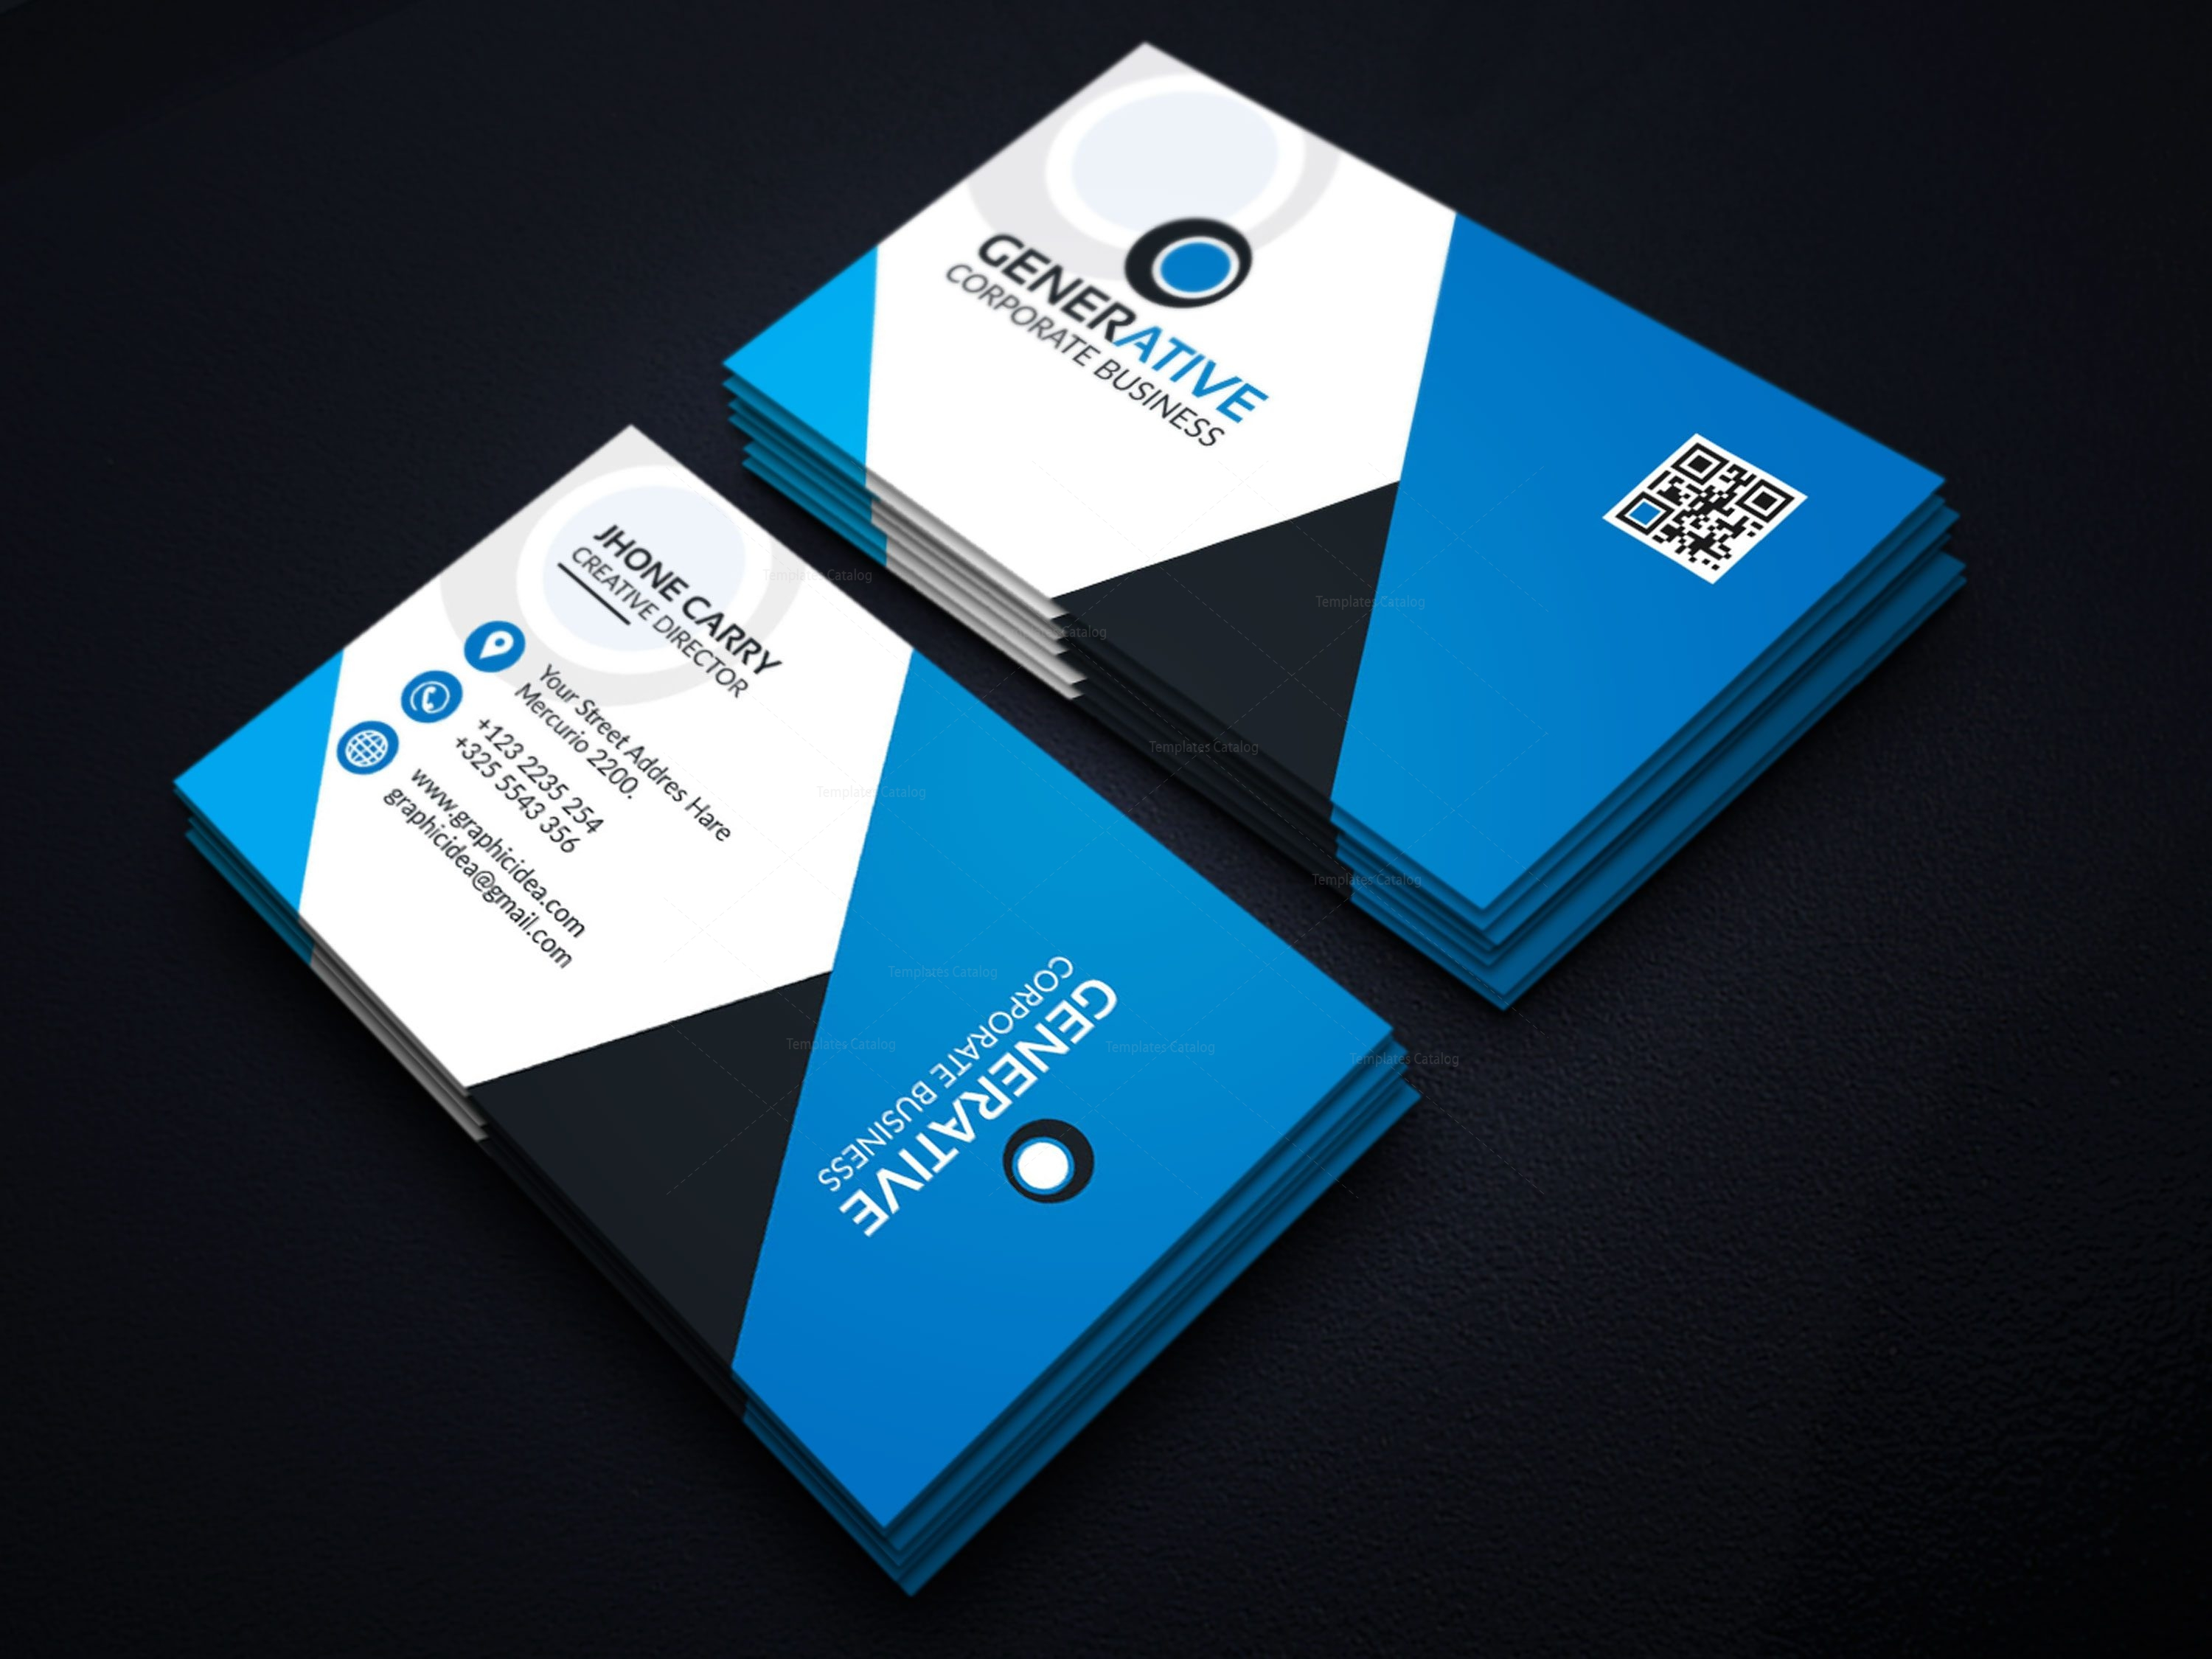 Eps sleek business card design template 001599 template catalog eps sleek business card design template 2 wajeb Image collections